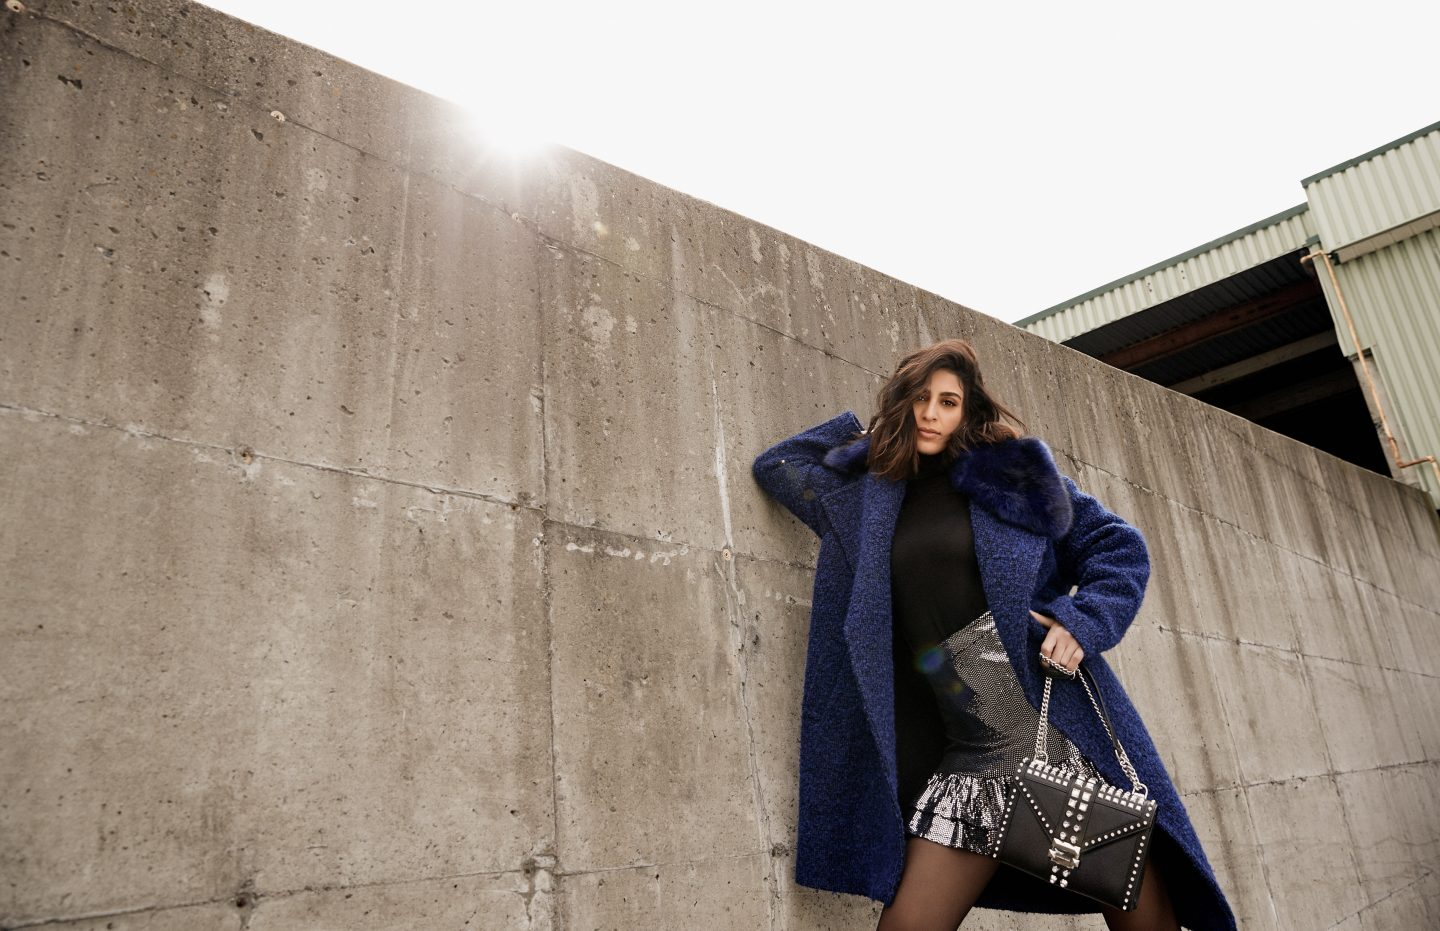 A woman wearing Michael Kors posing for a magazine photoshoot